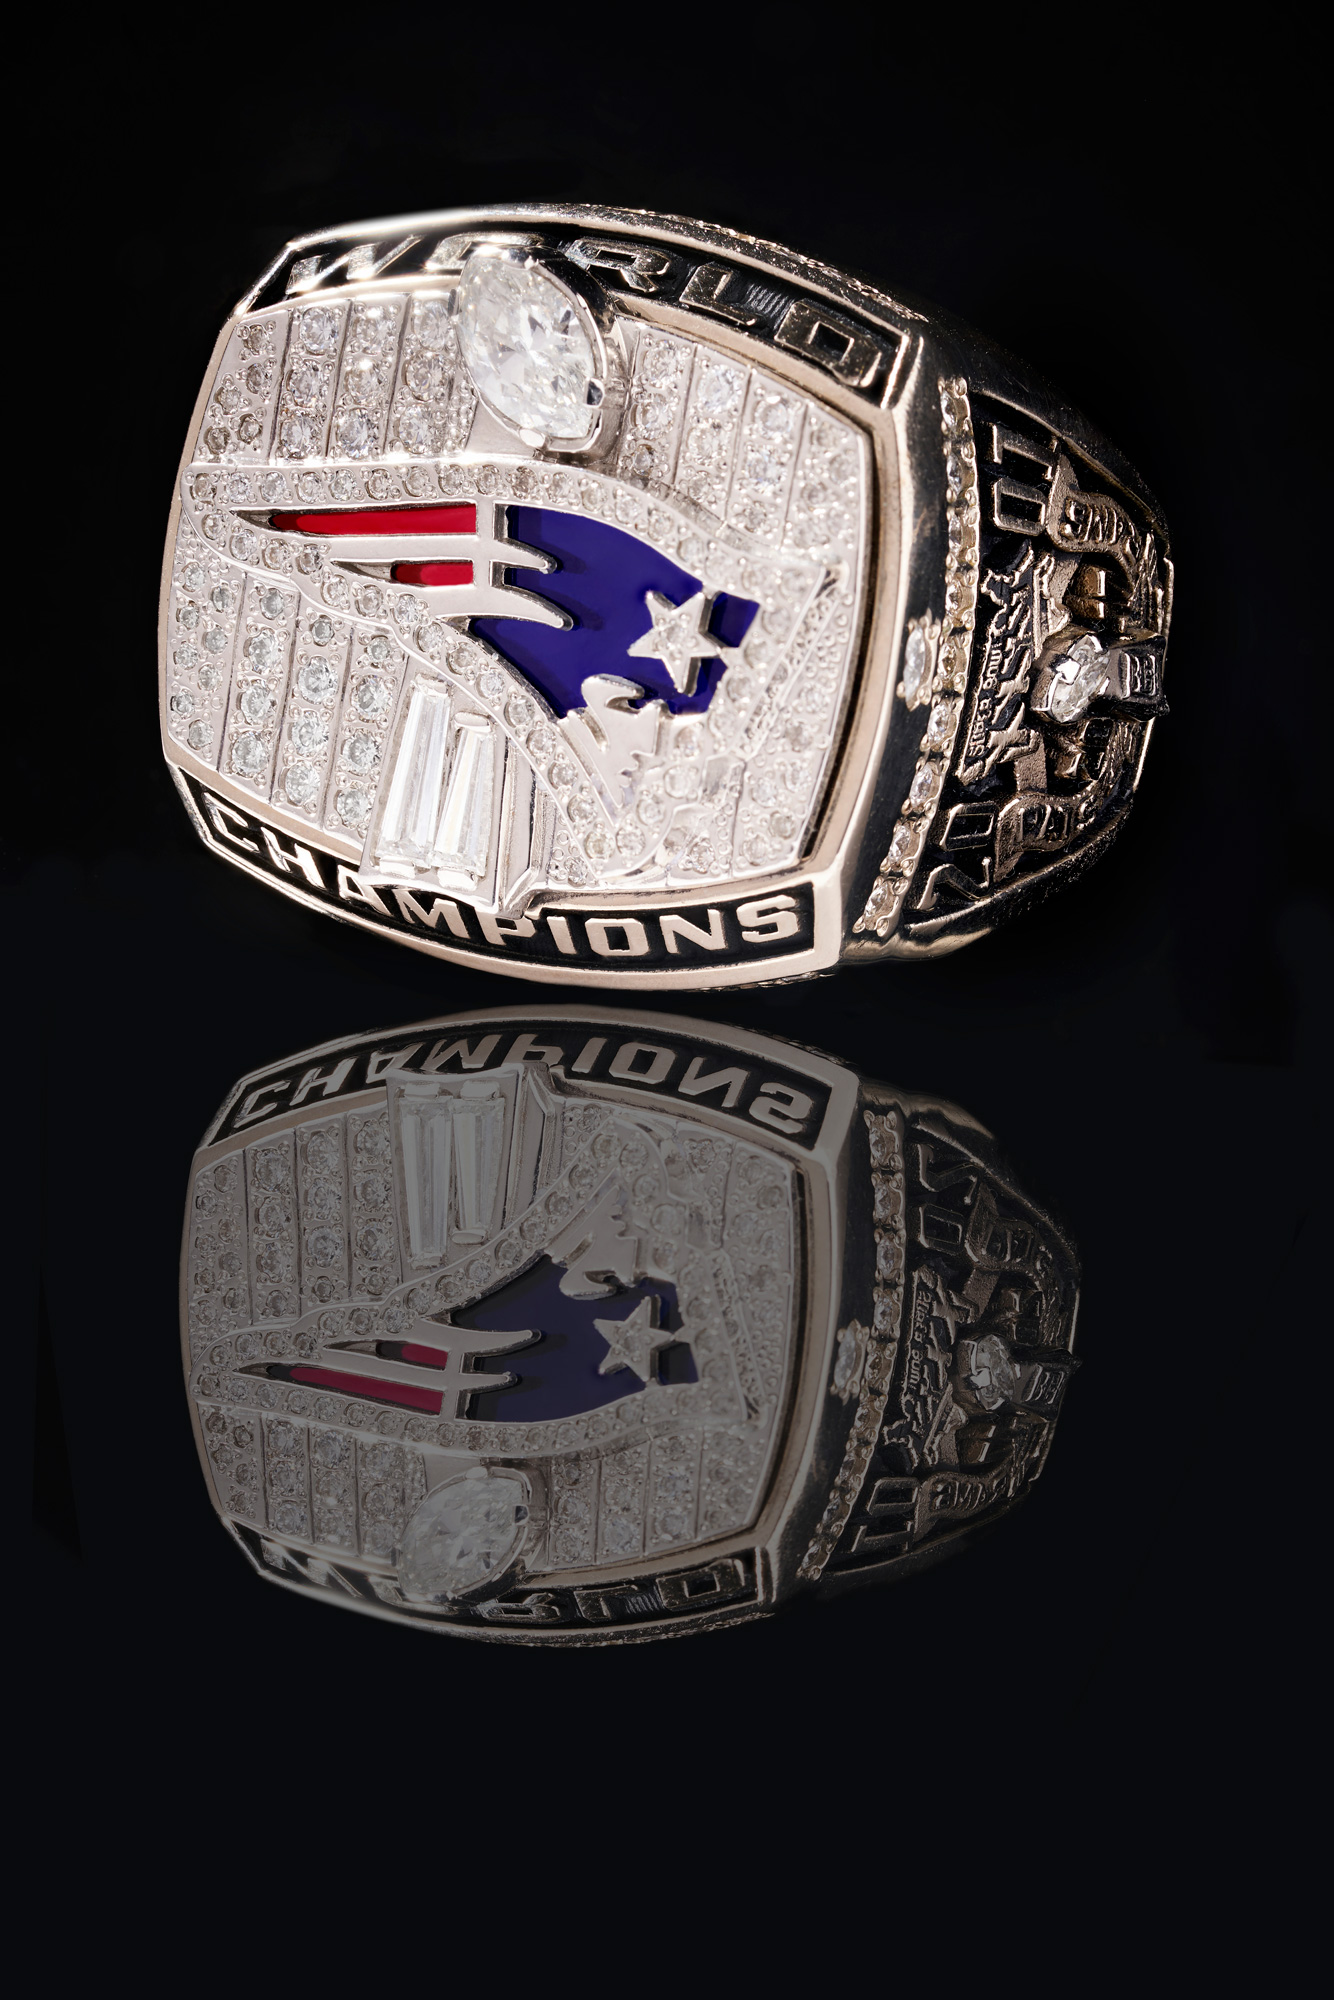 Product-Photograph-of-Super-Bowl-Rings-by-Architectural,-Interior,-and-Product-Photographer-Nick-McGinn-5.web.jpg